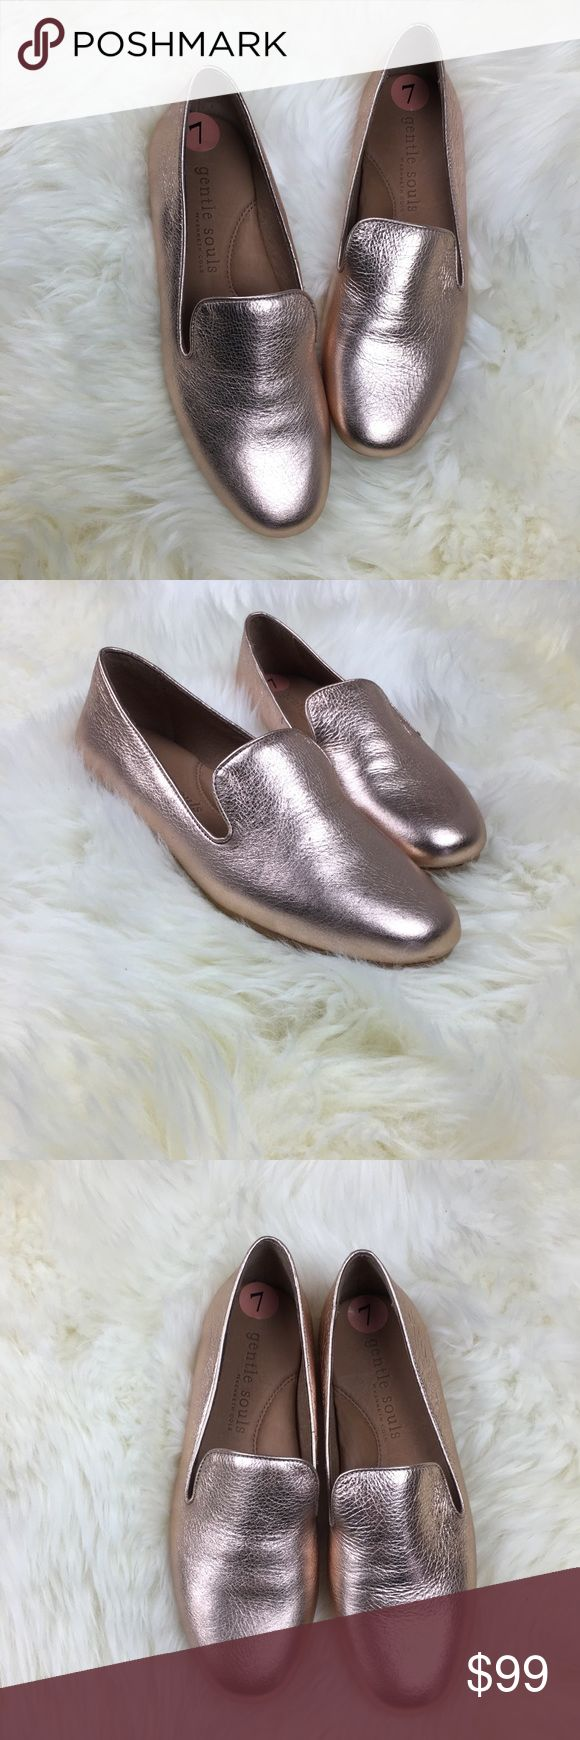 Gentle Souls by Kenneth Cole Rose Gold Loafers 7 Gentle Souls by Kenneth Cole Rose Gold Loafers Sz 7 Brand new with tags. Slight wear on soles from try-ons. Padded insoles. Bundle three or more items and save 15% off! Kenneth Cole Shoes Flats & Loafers